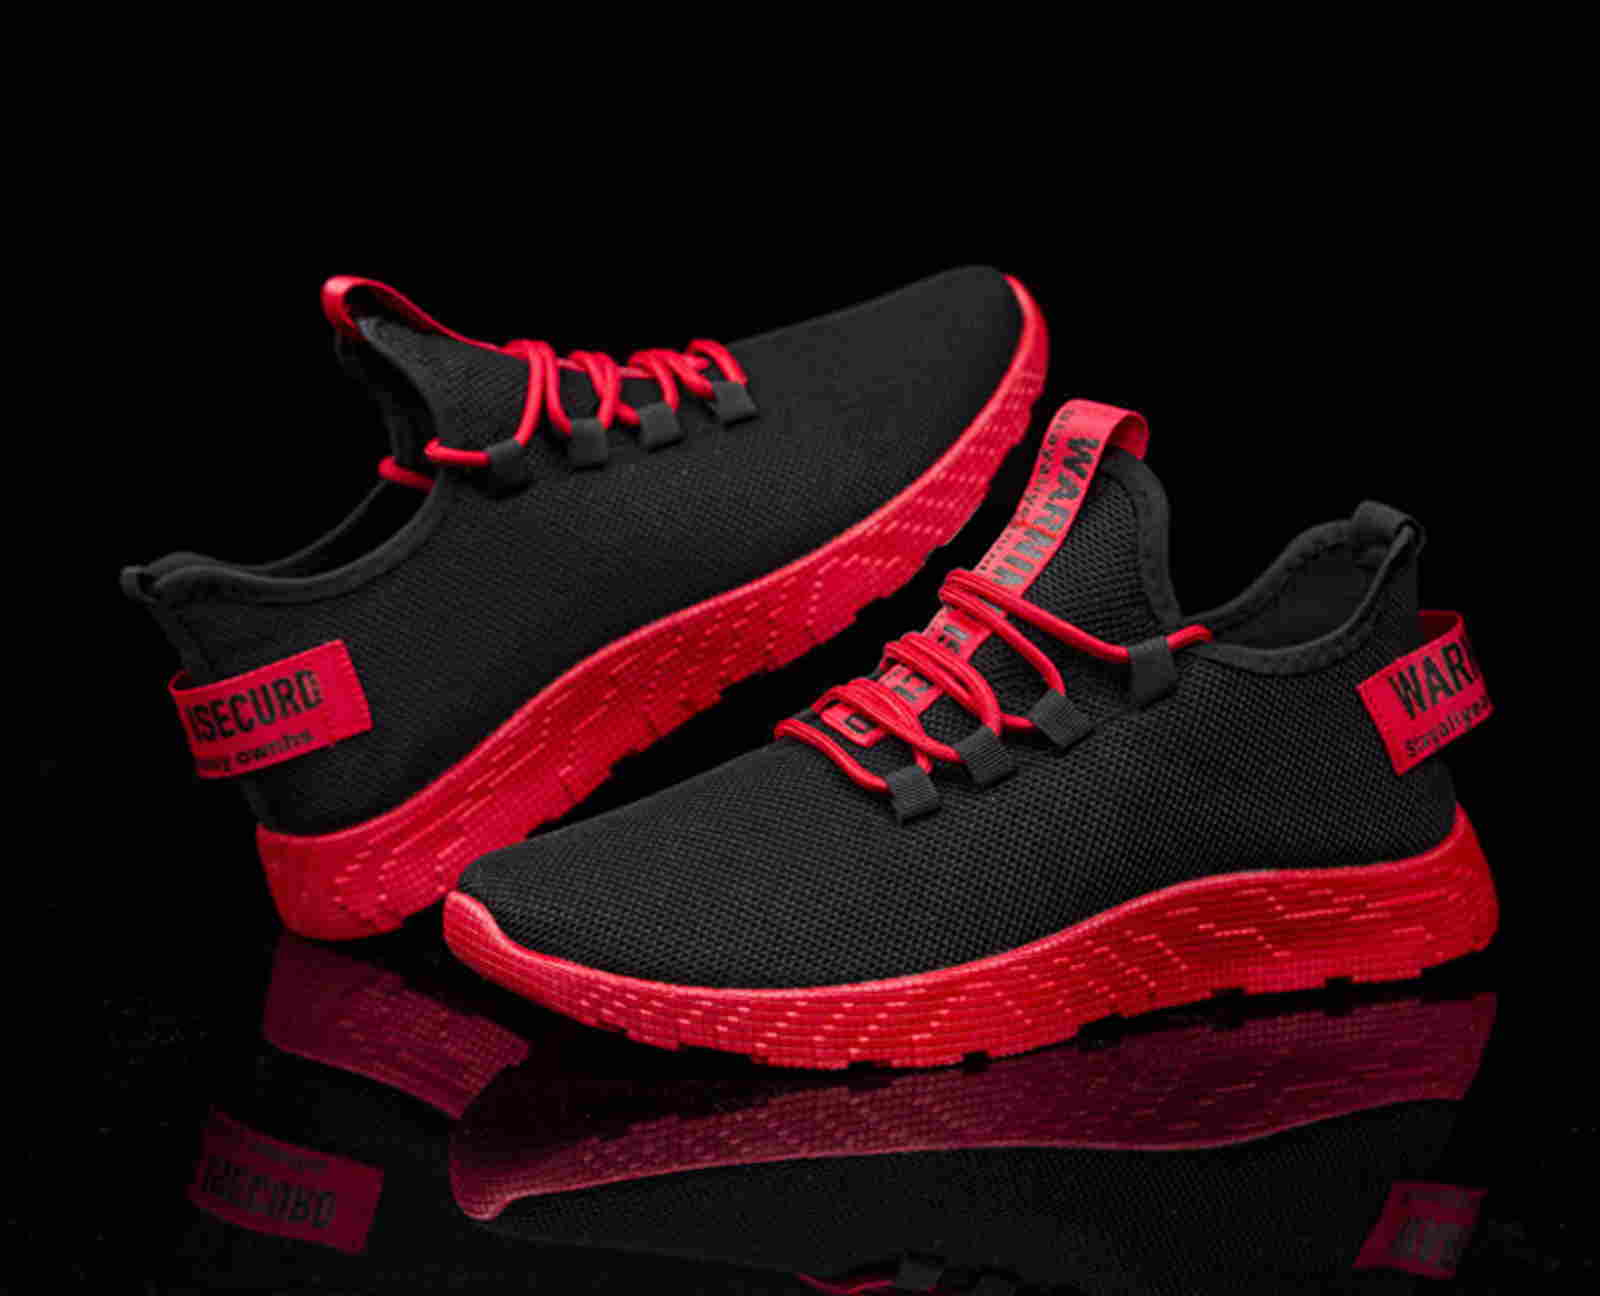 Zapatillas de Crossfit unisex